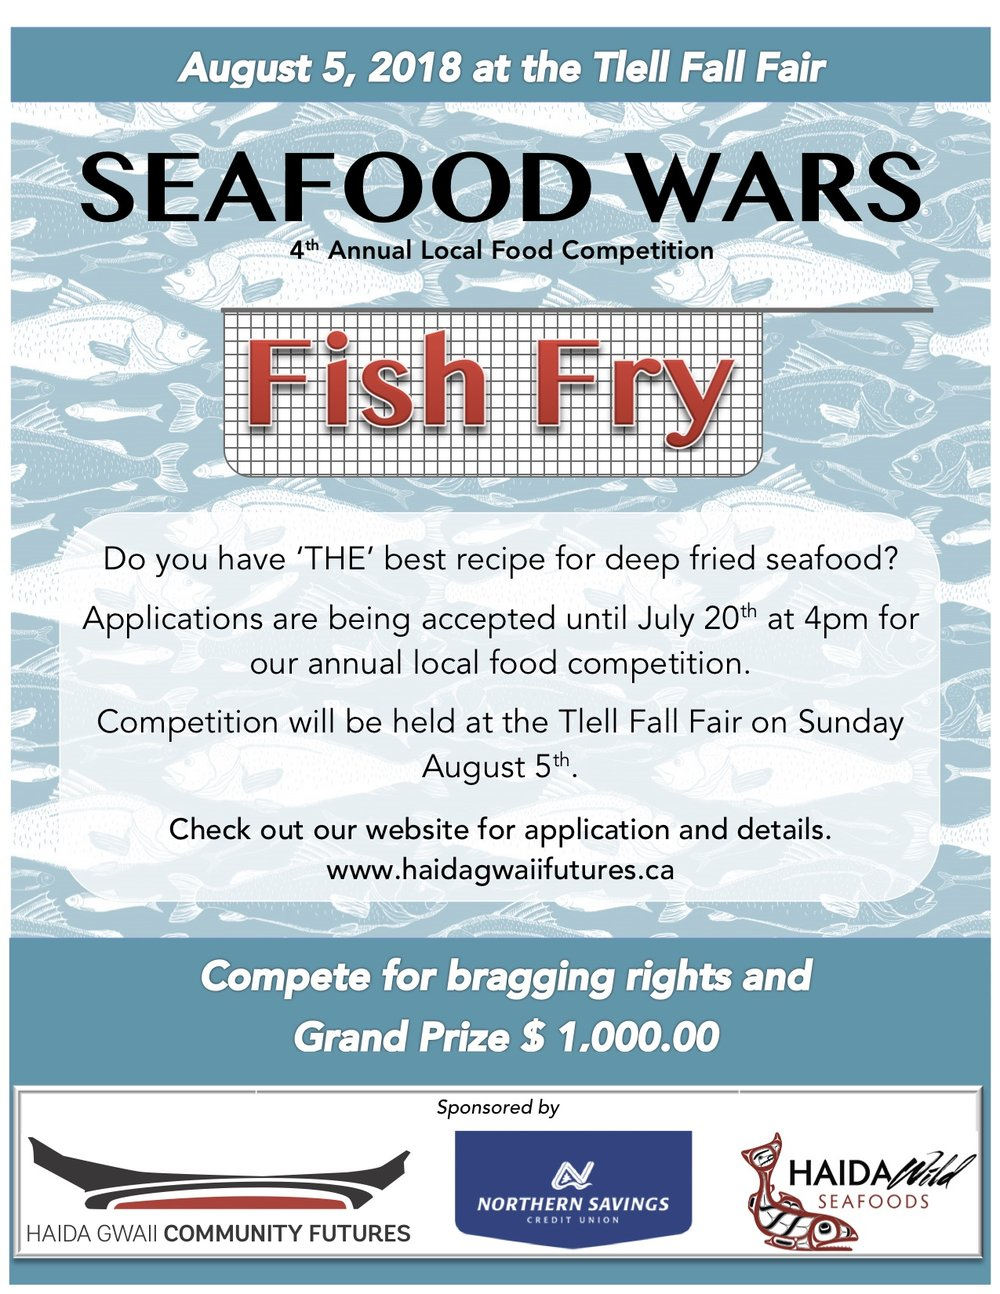 Seafood Wars 2018 Invitation.jpg